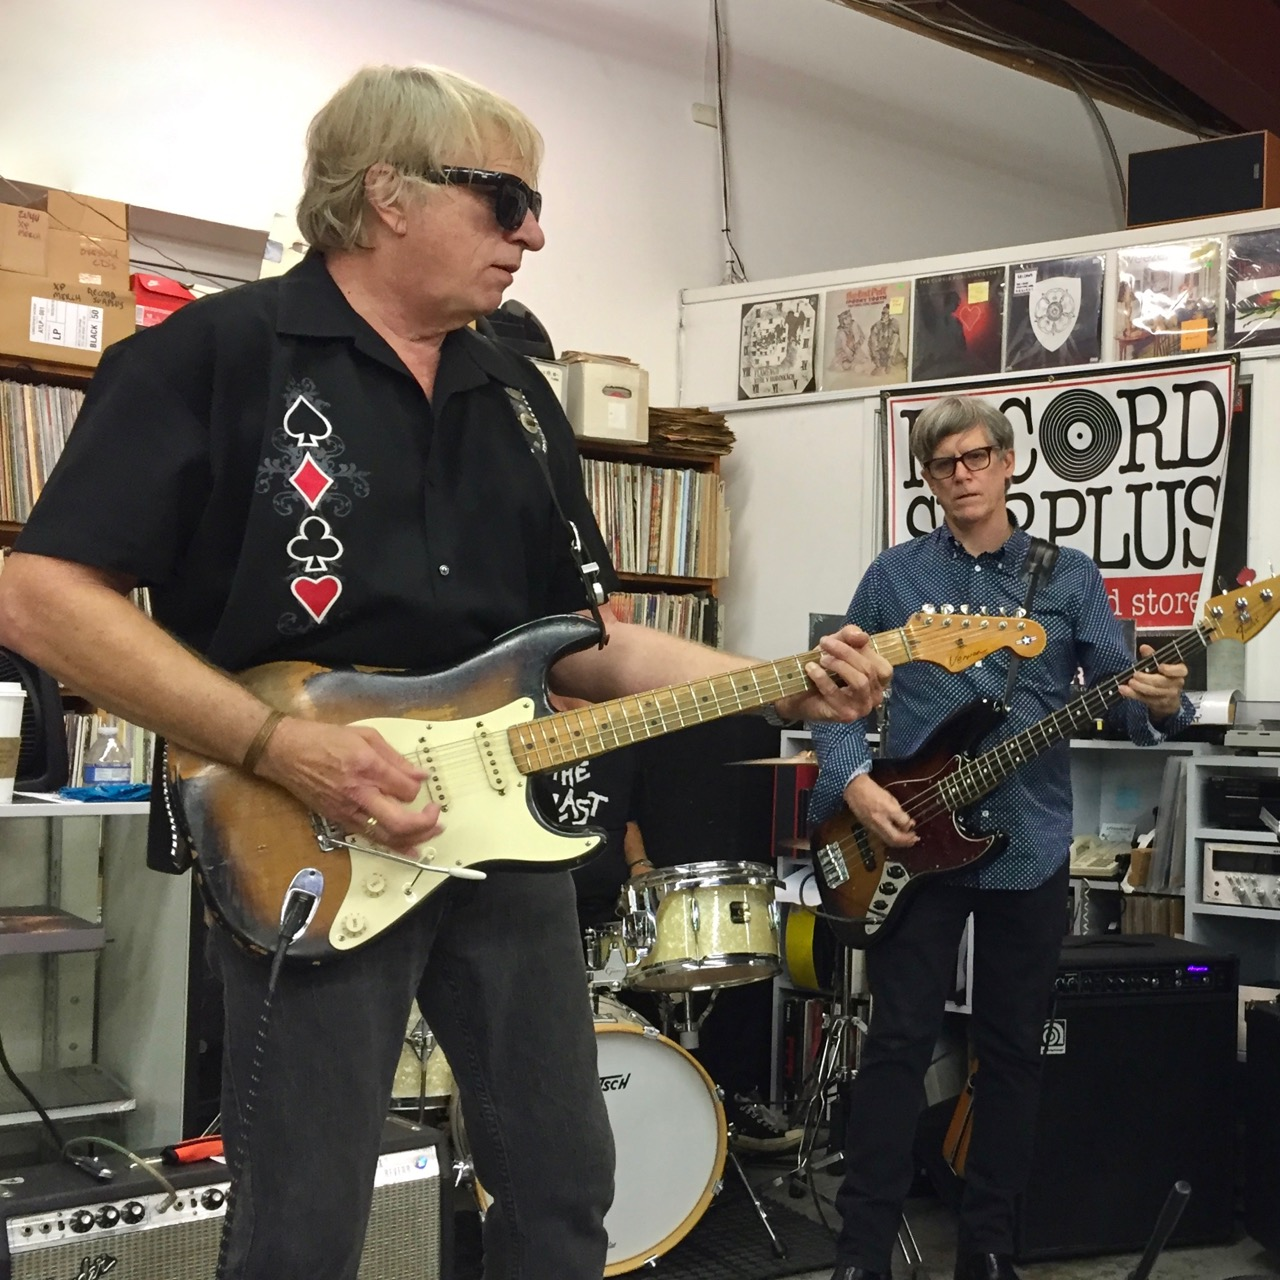 3 Balls of Fire – Free Performance at Record Surplus